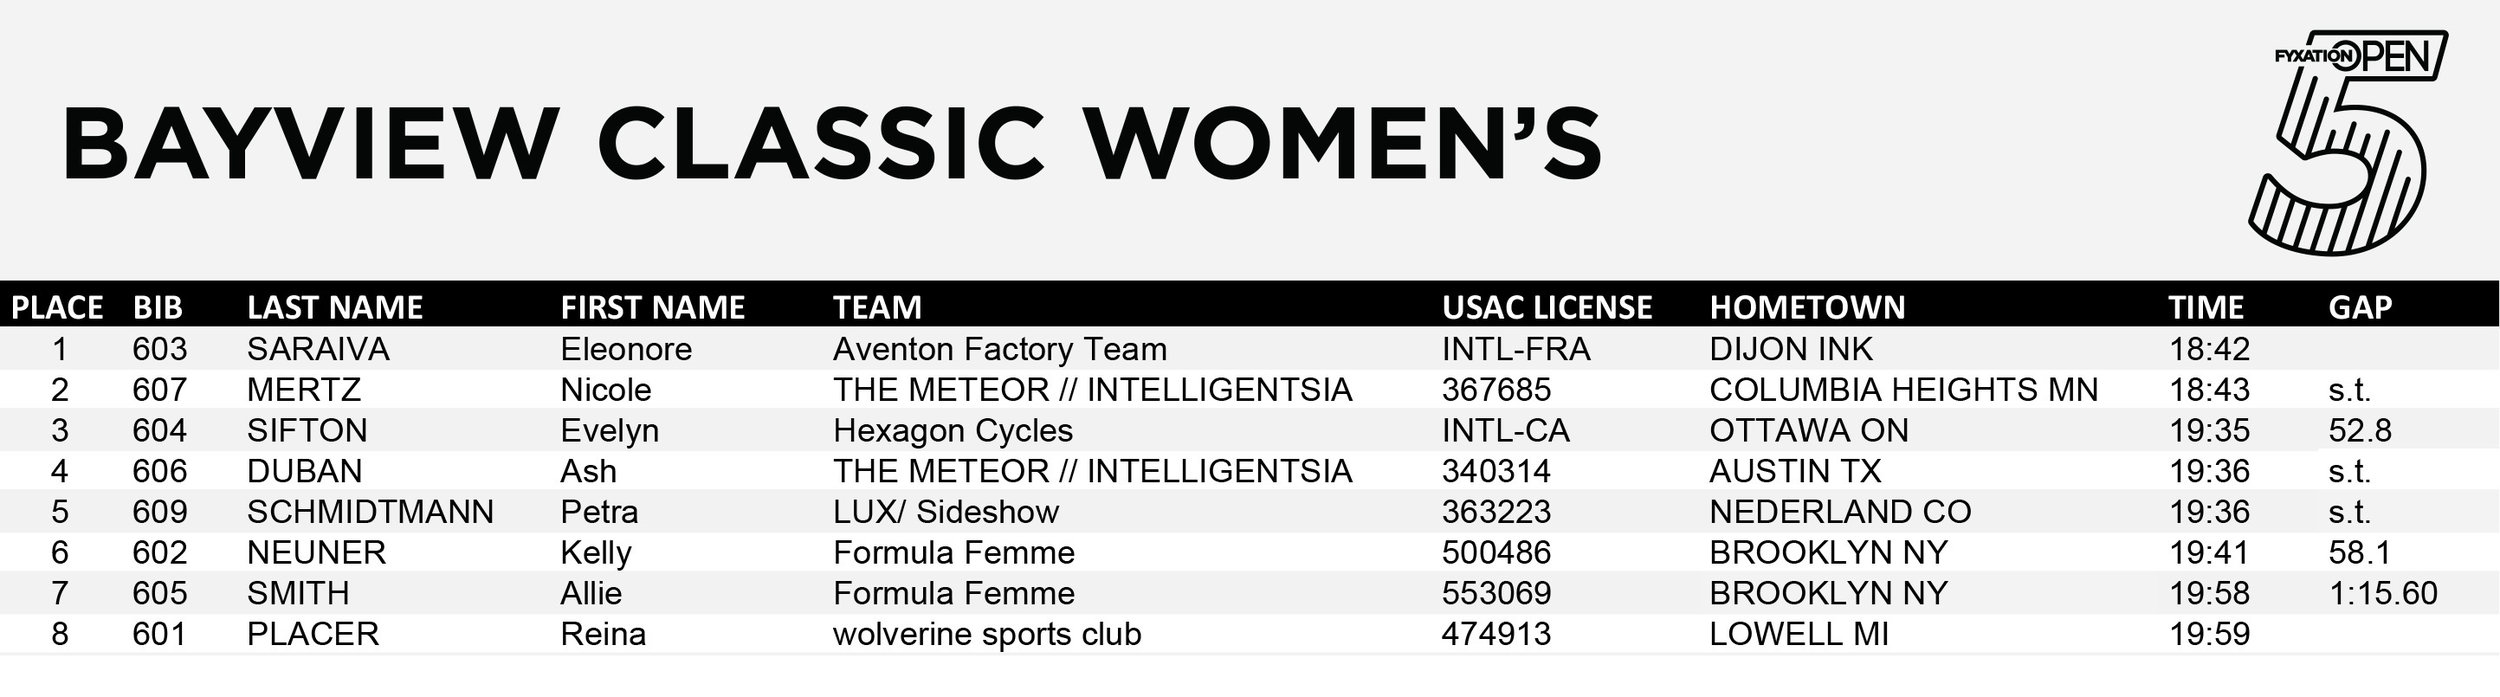 2018_bayview_womens_results.jpg